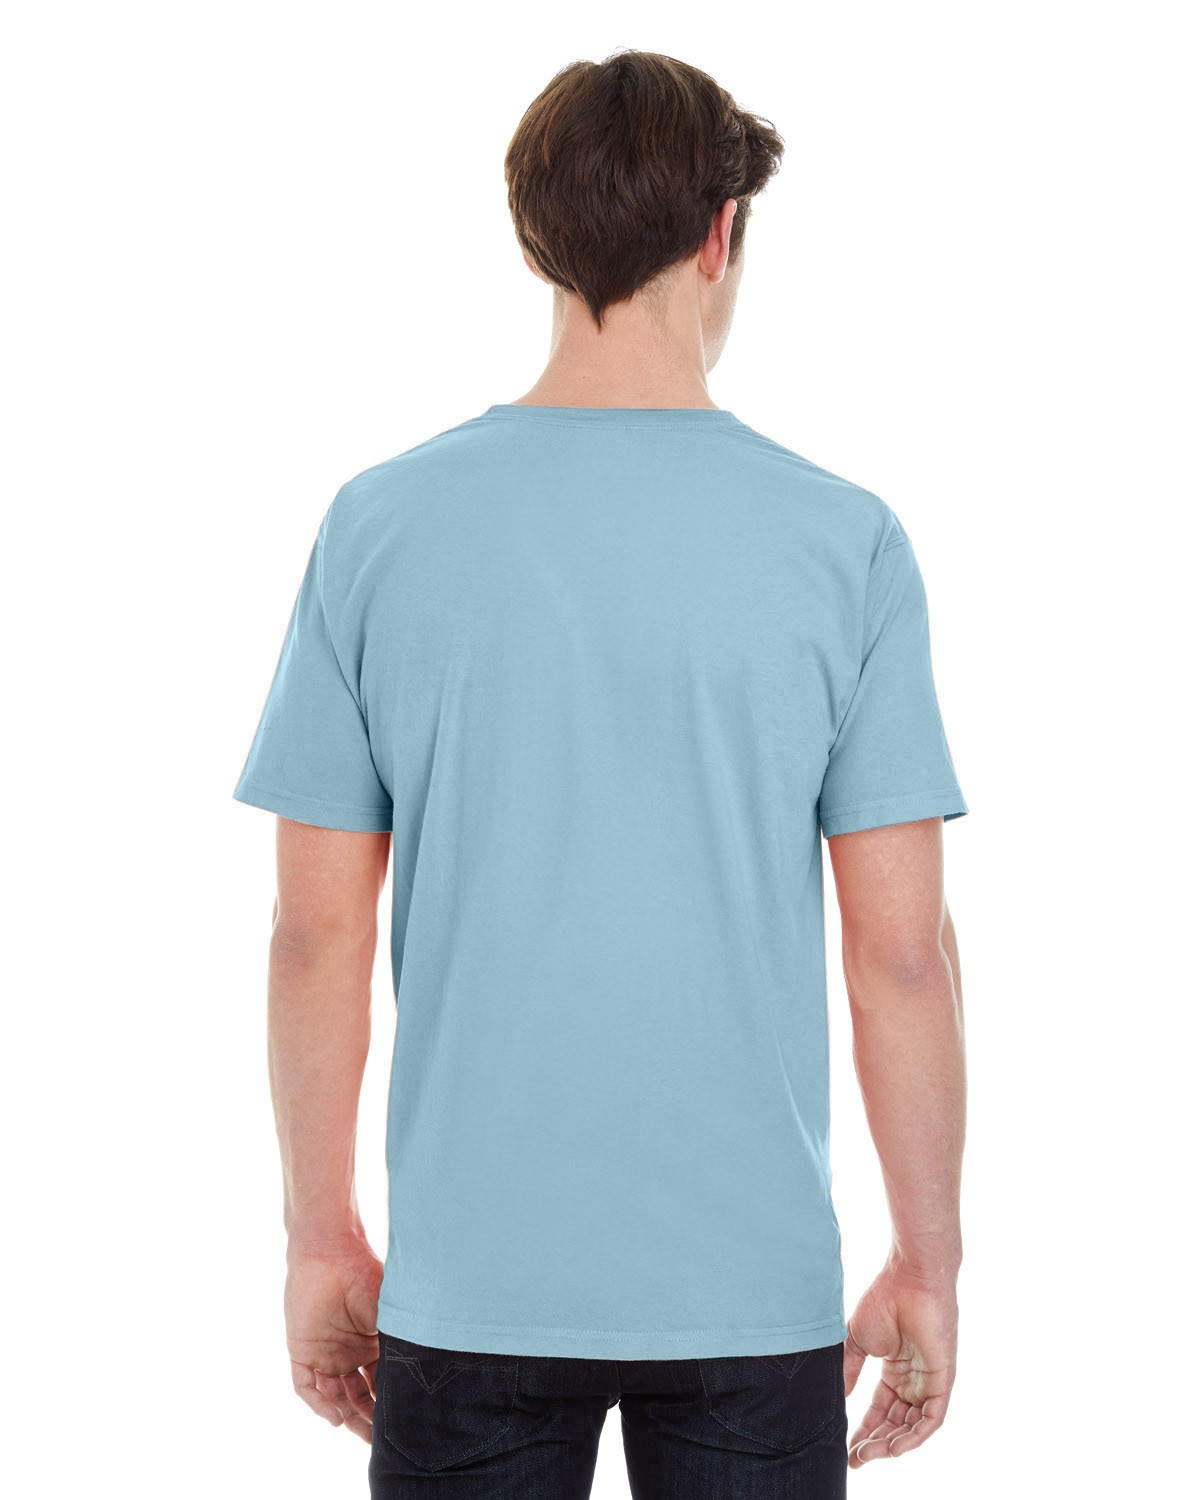 C4017 Comfort Colors CHAMBRAY